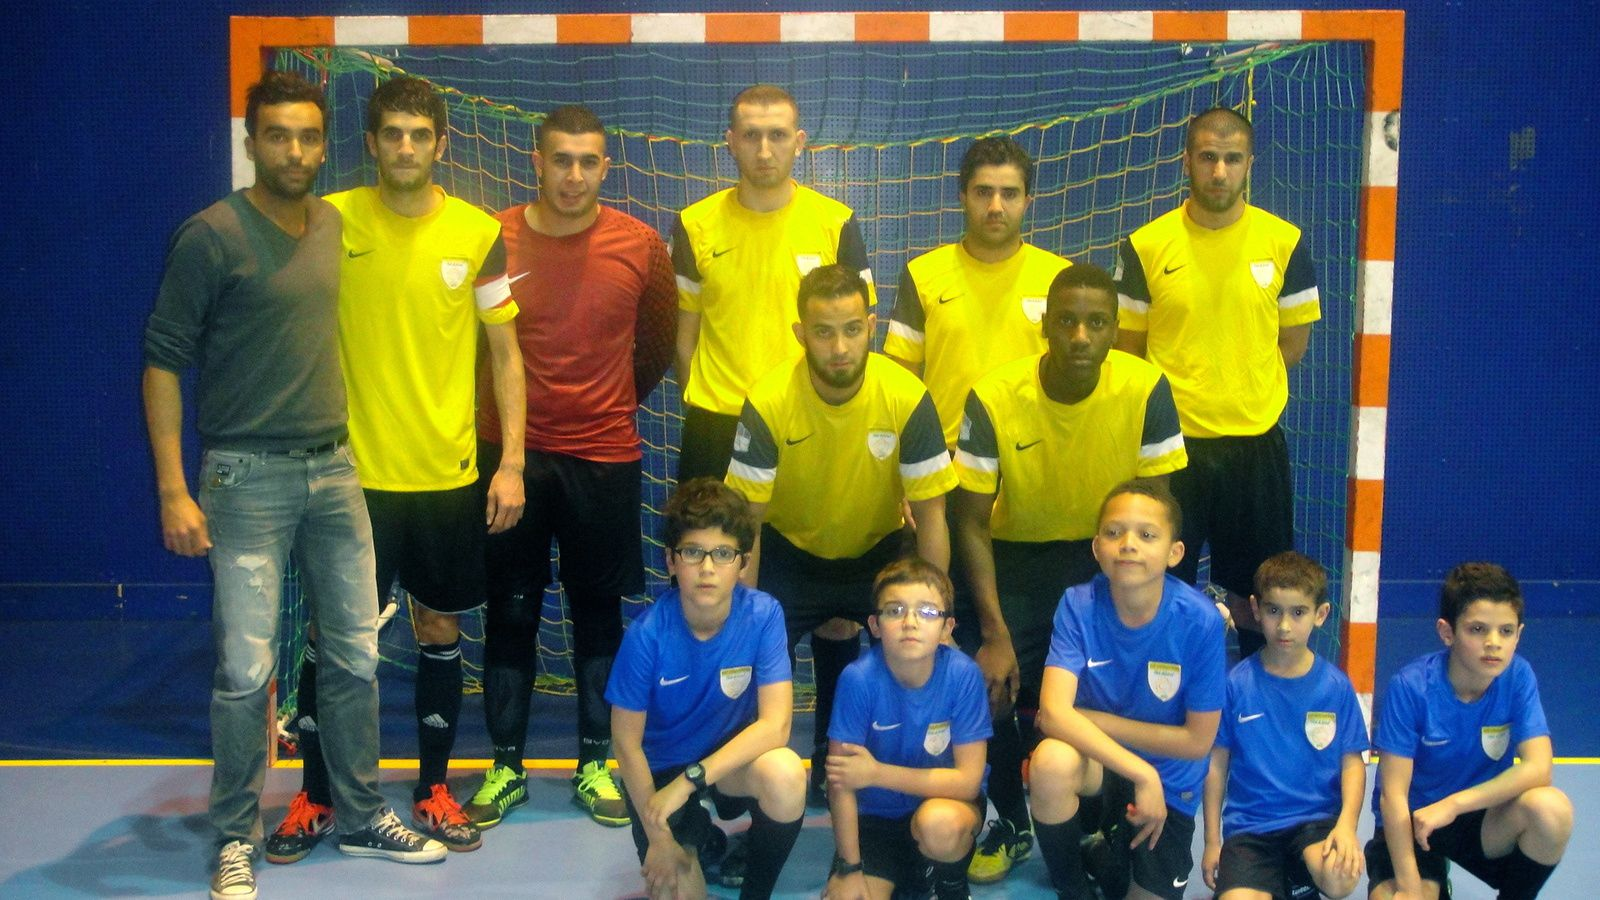 Les Vénissians de l'aS Charreard futsal